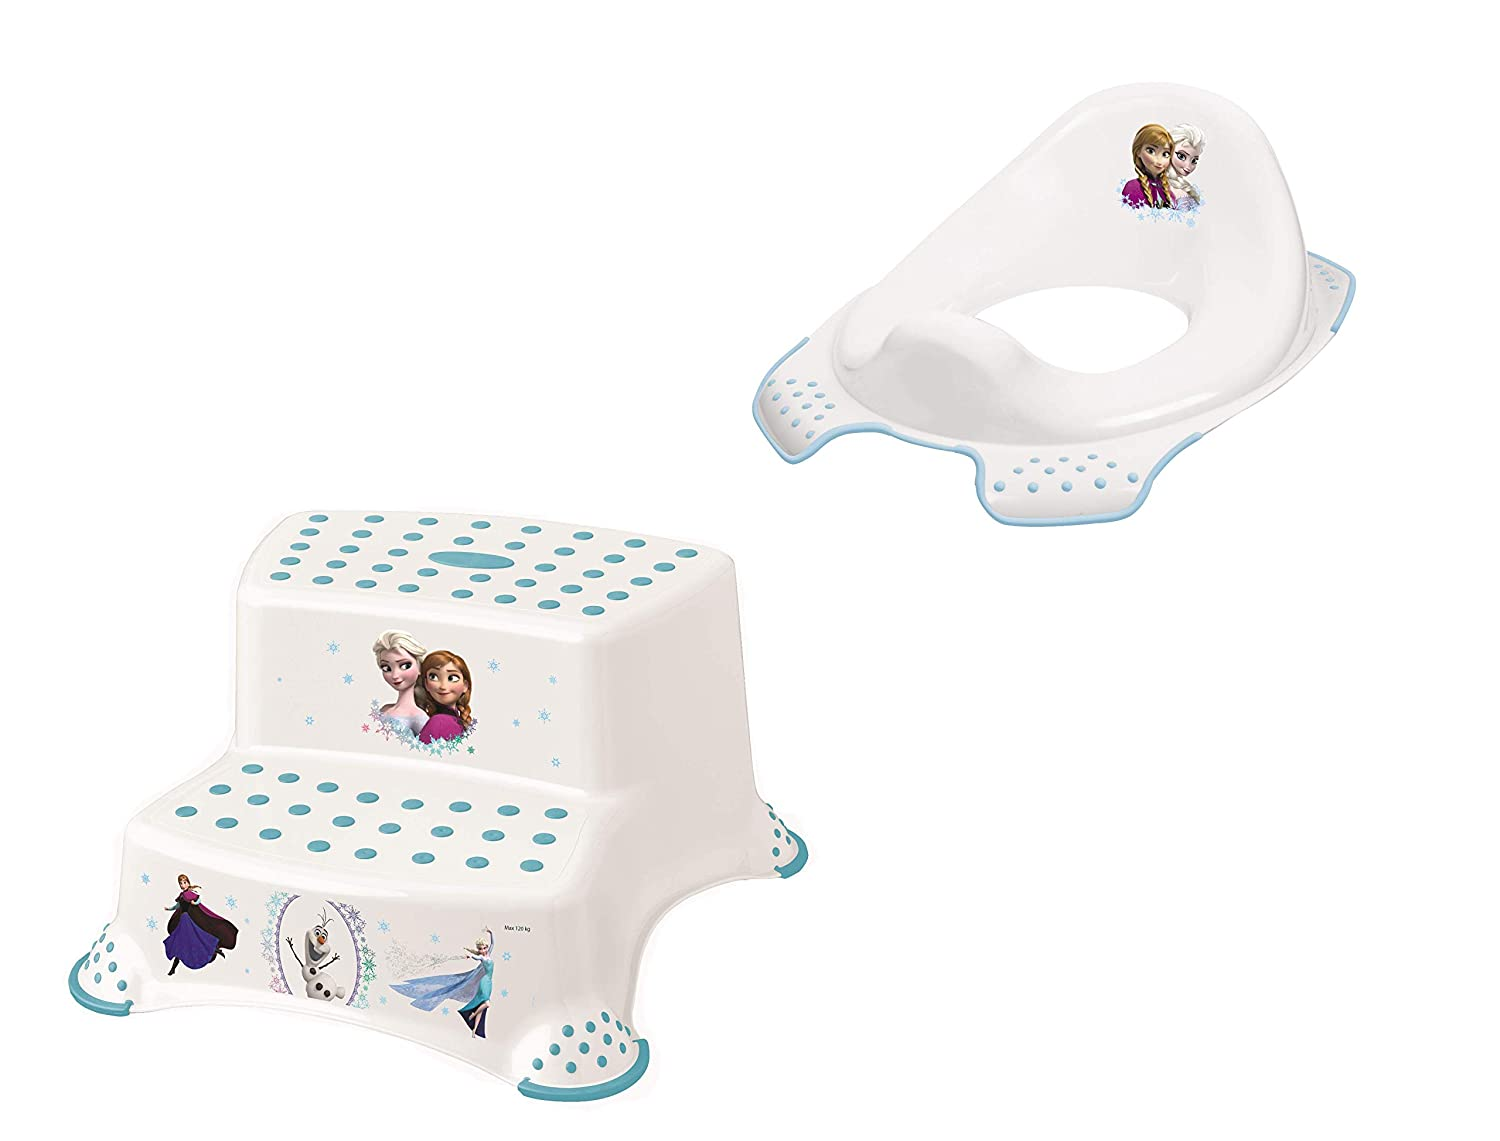 Disney Eiskonigin 2er Z Set Wc Aufsatz Hocker Zweistufig Toilettentrainer Amazon De Baby